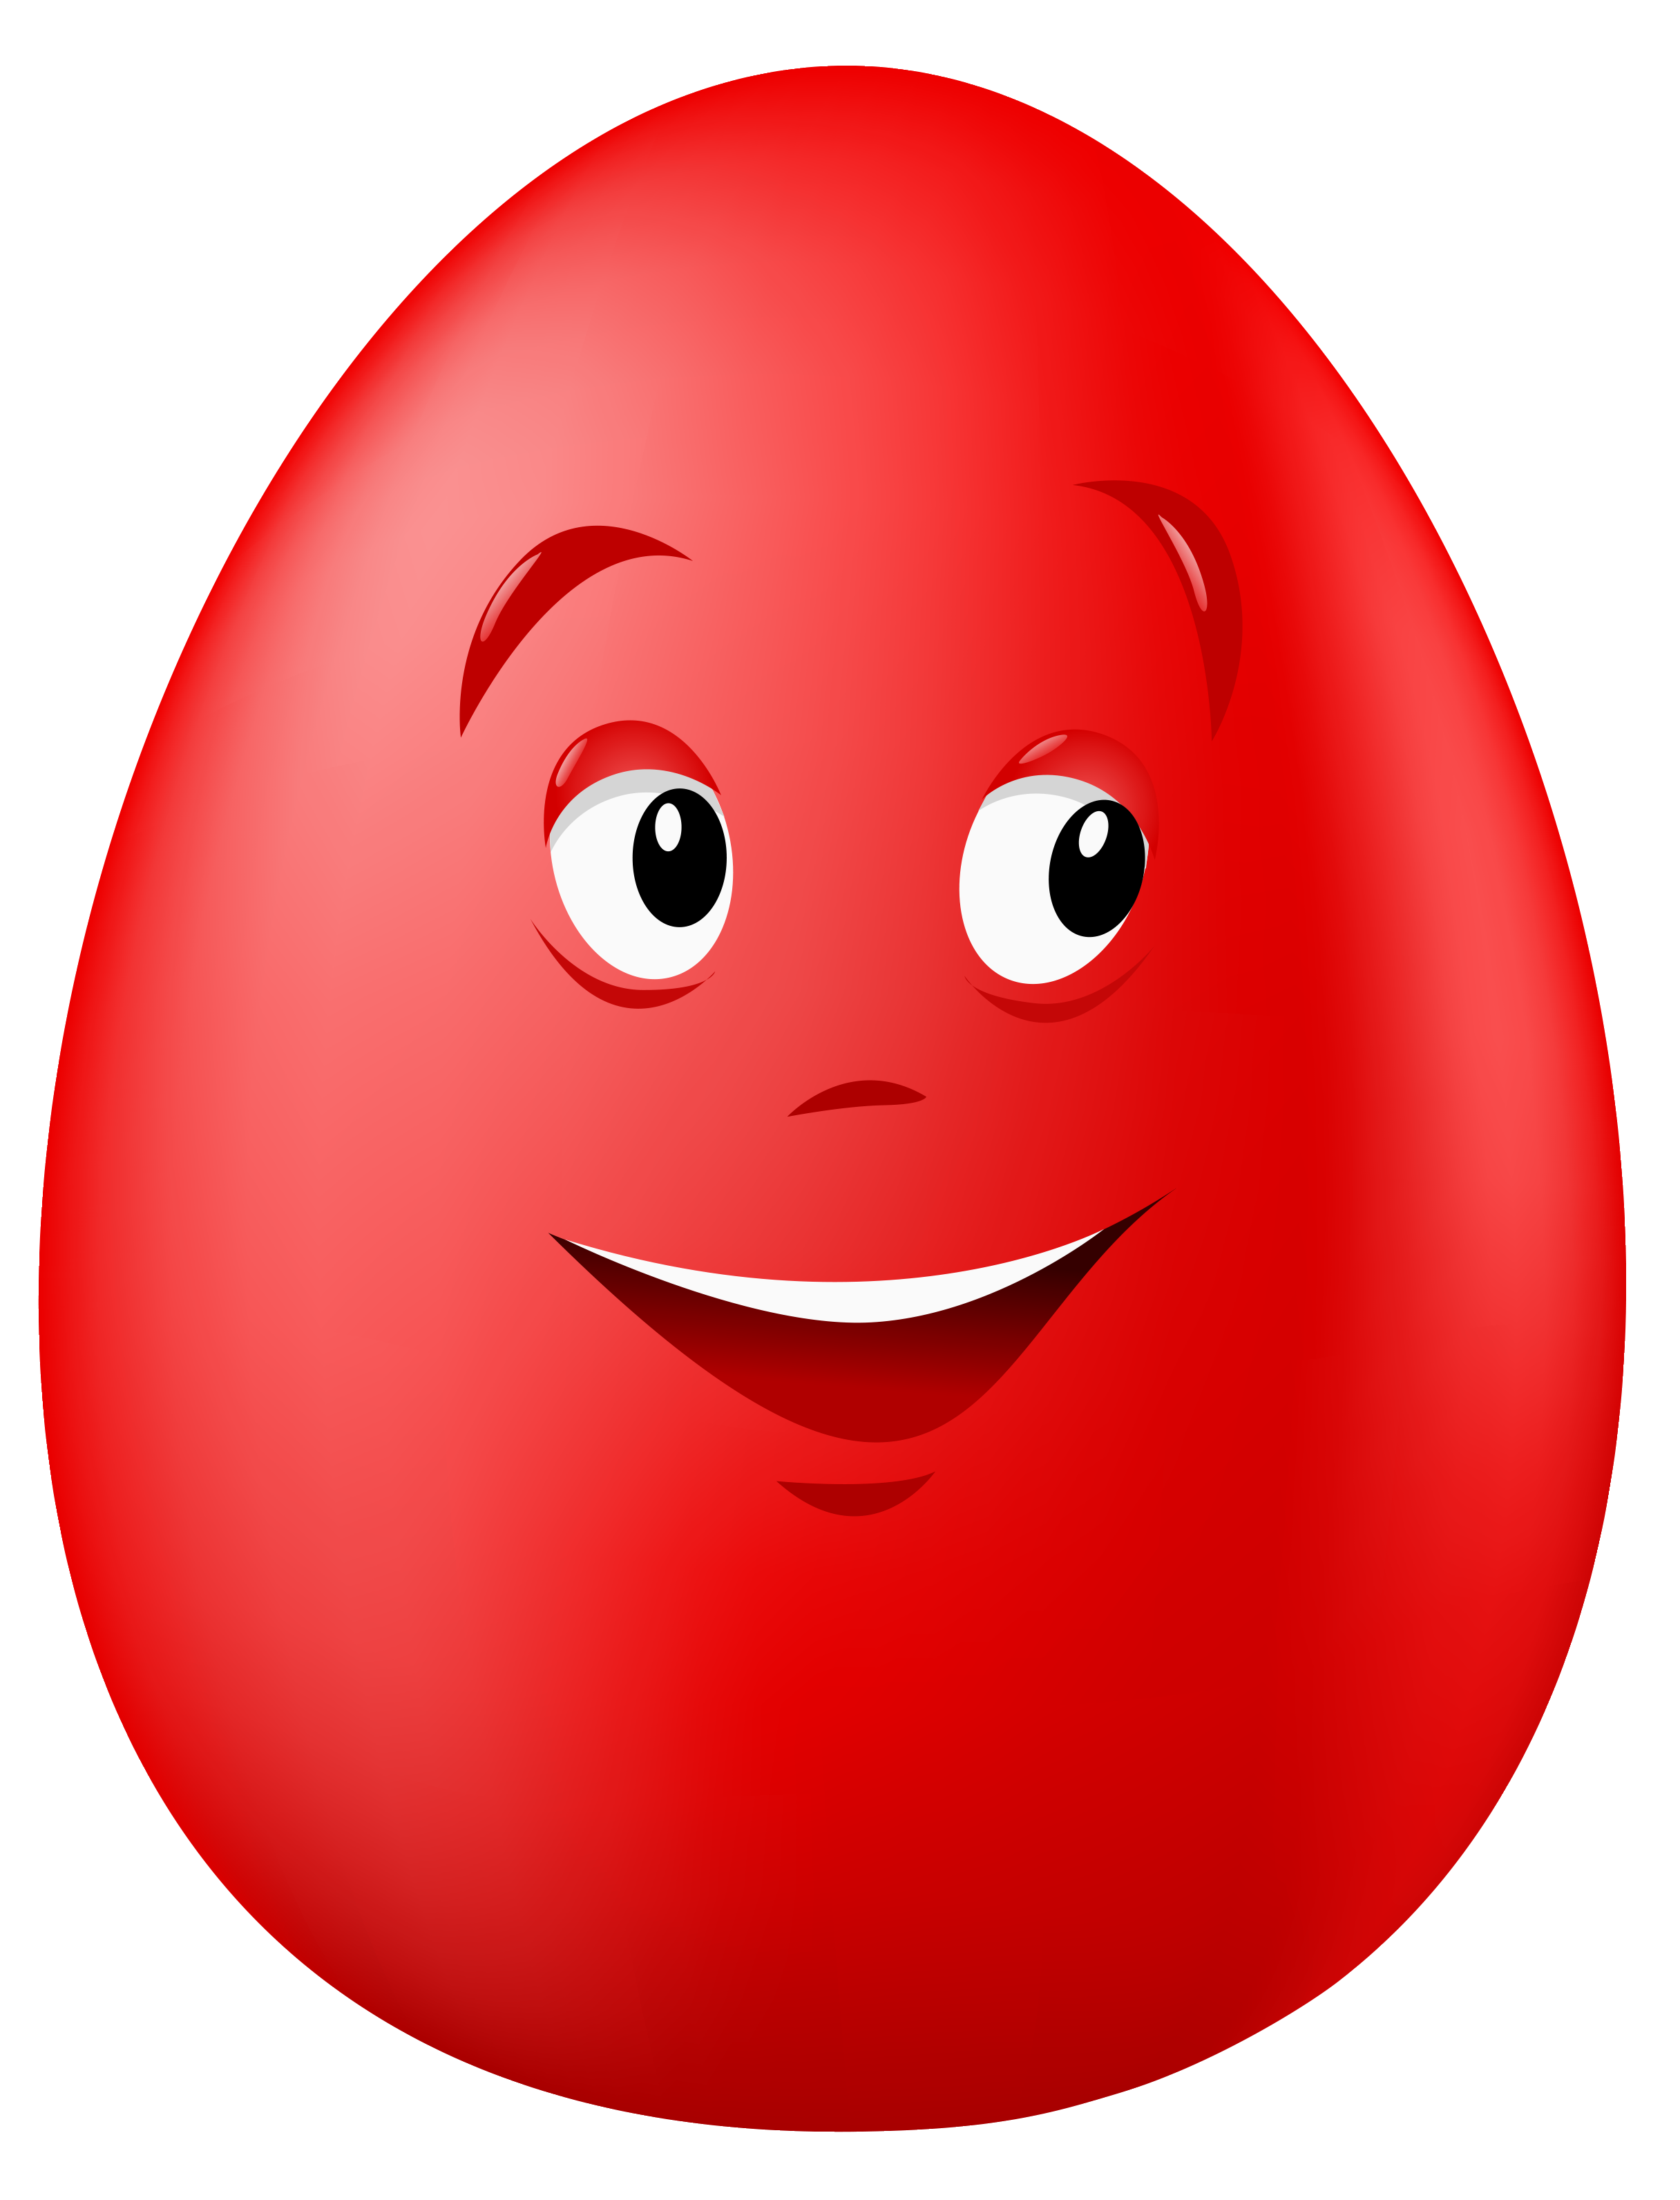 Transparent easter red smiling. Clipart smile sweet smile